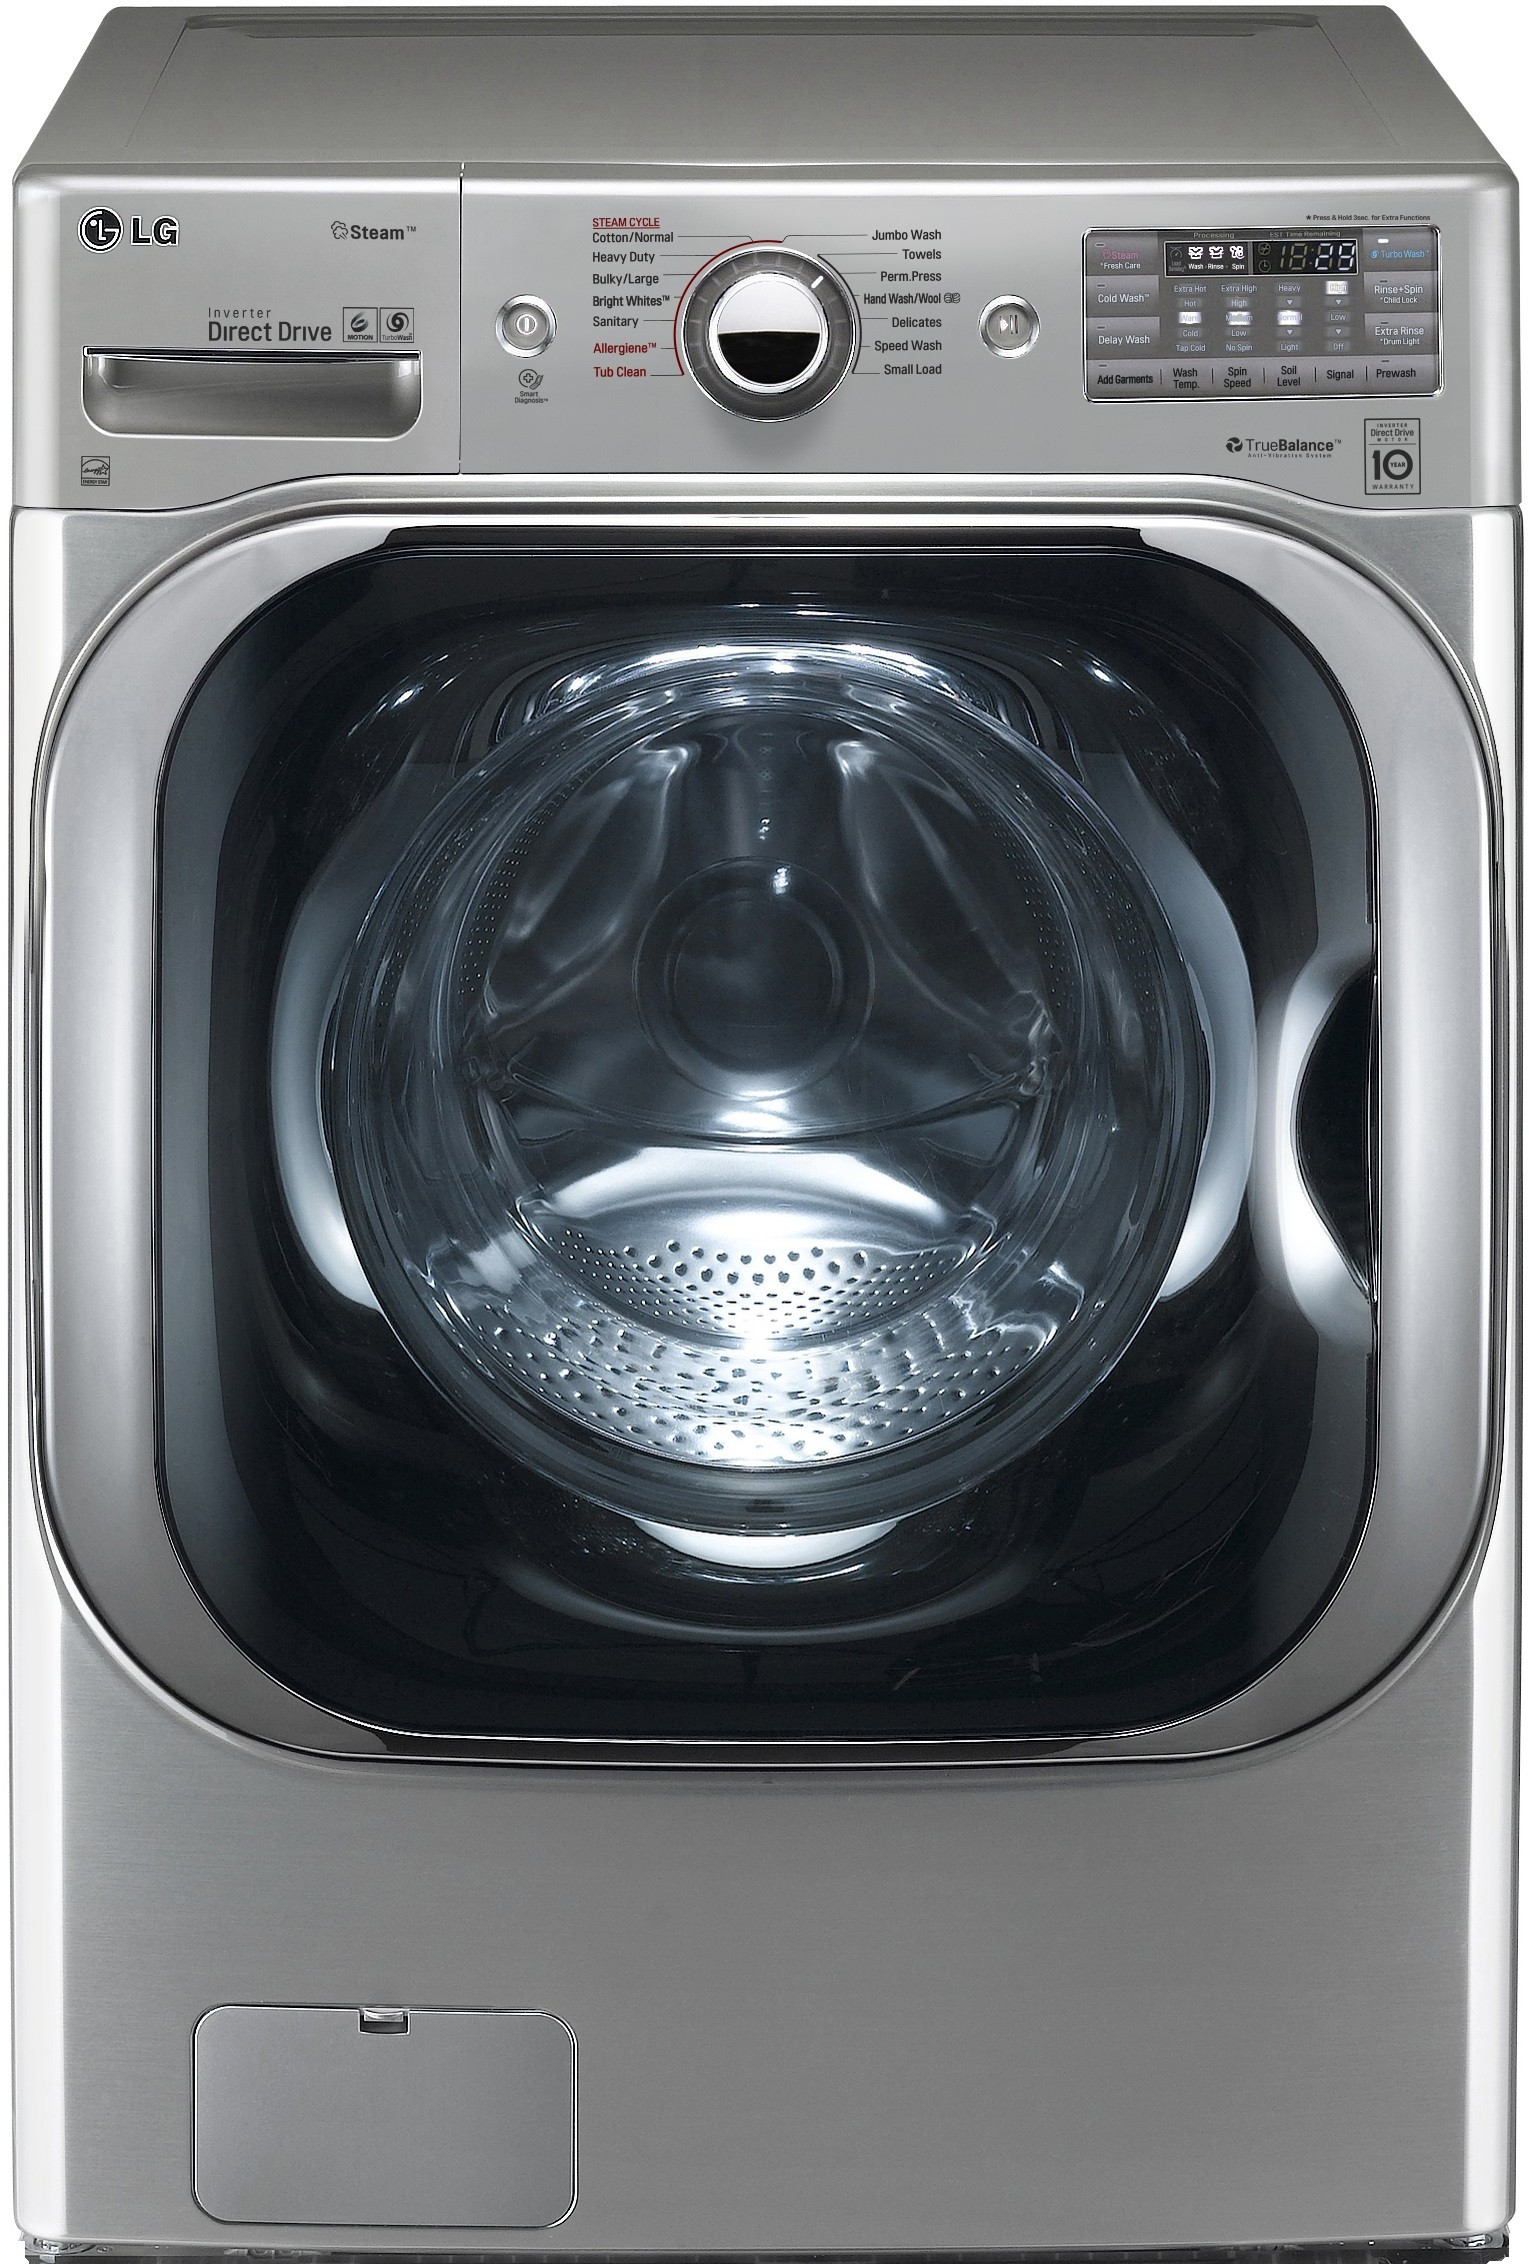 Lg 2 3 cu ft all in one washer and dryer - Lg 2 3 Cu Ft All In One Washer And Dryer 27